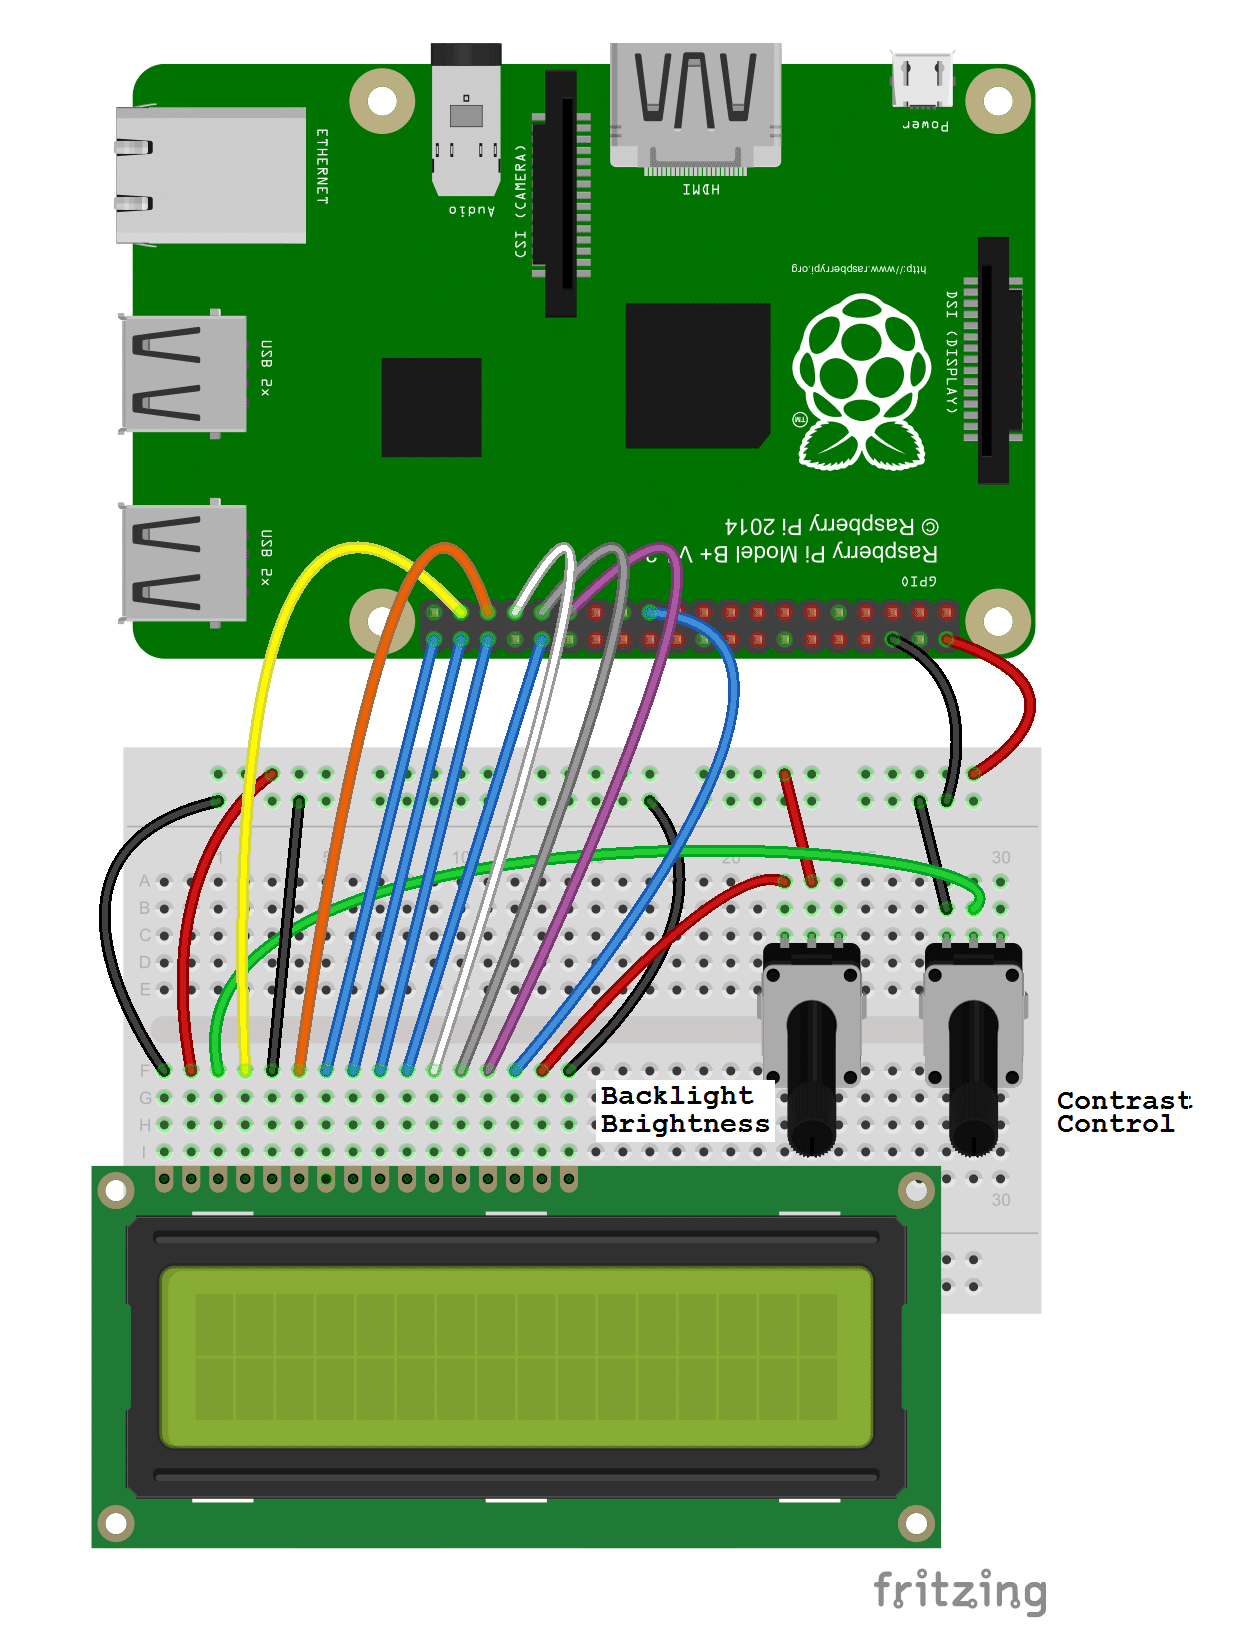 Stupendous How To Setup An Lcd On The Raspberry Pi And Program It With C Wiring Cloud Nuvitbieswglorg